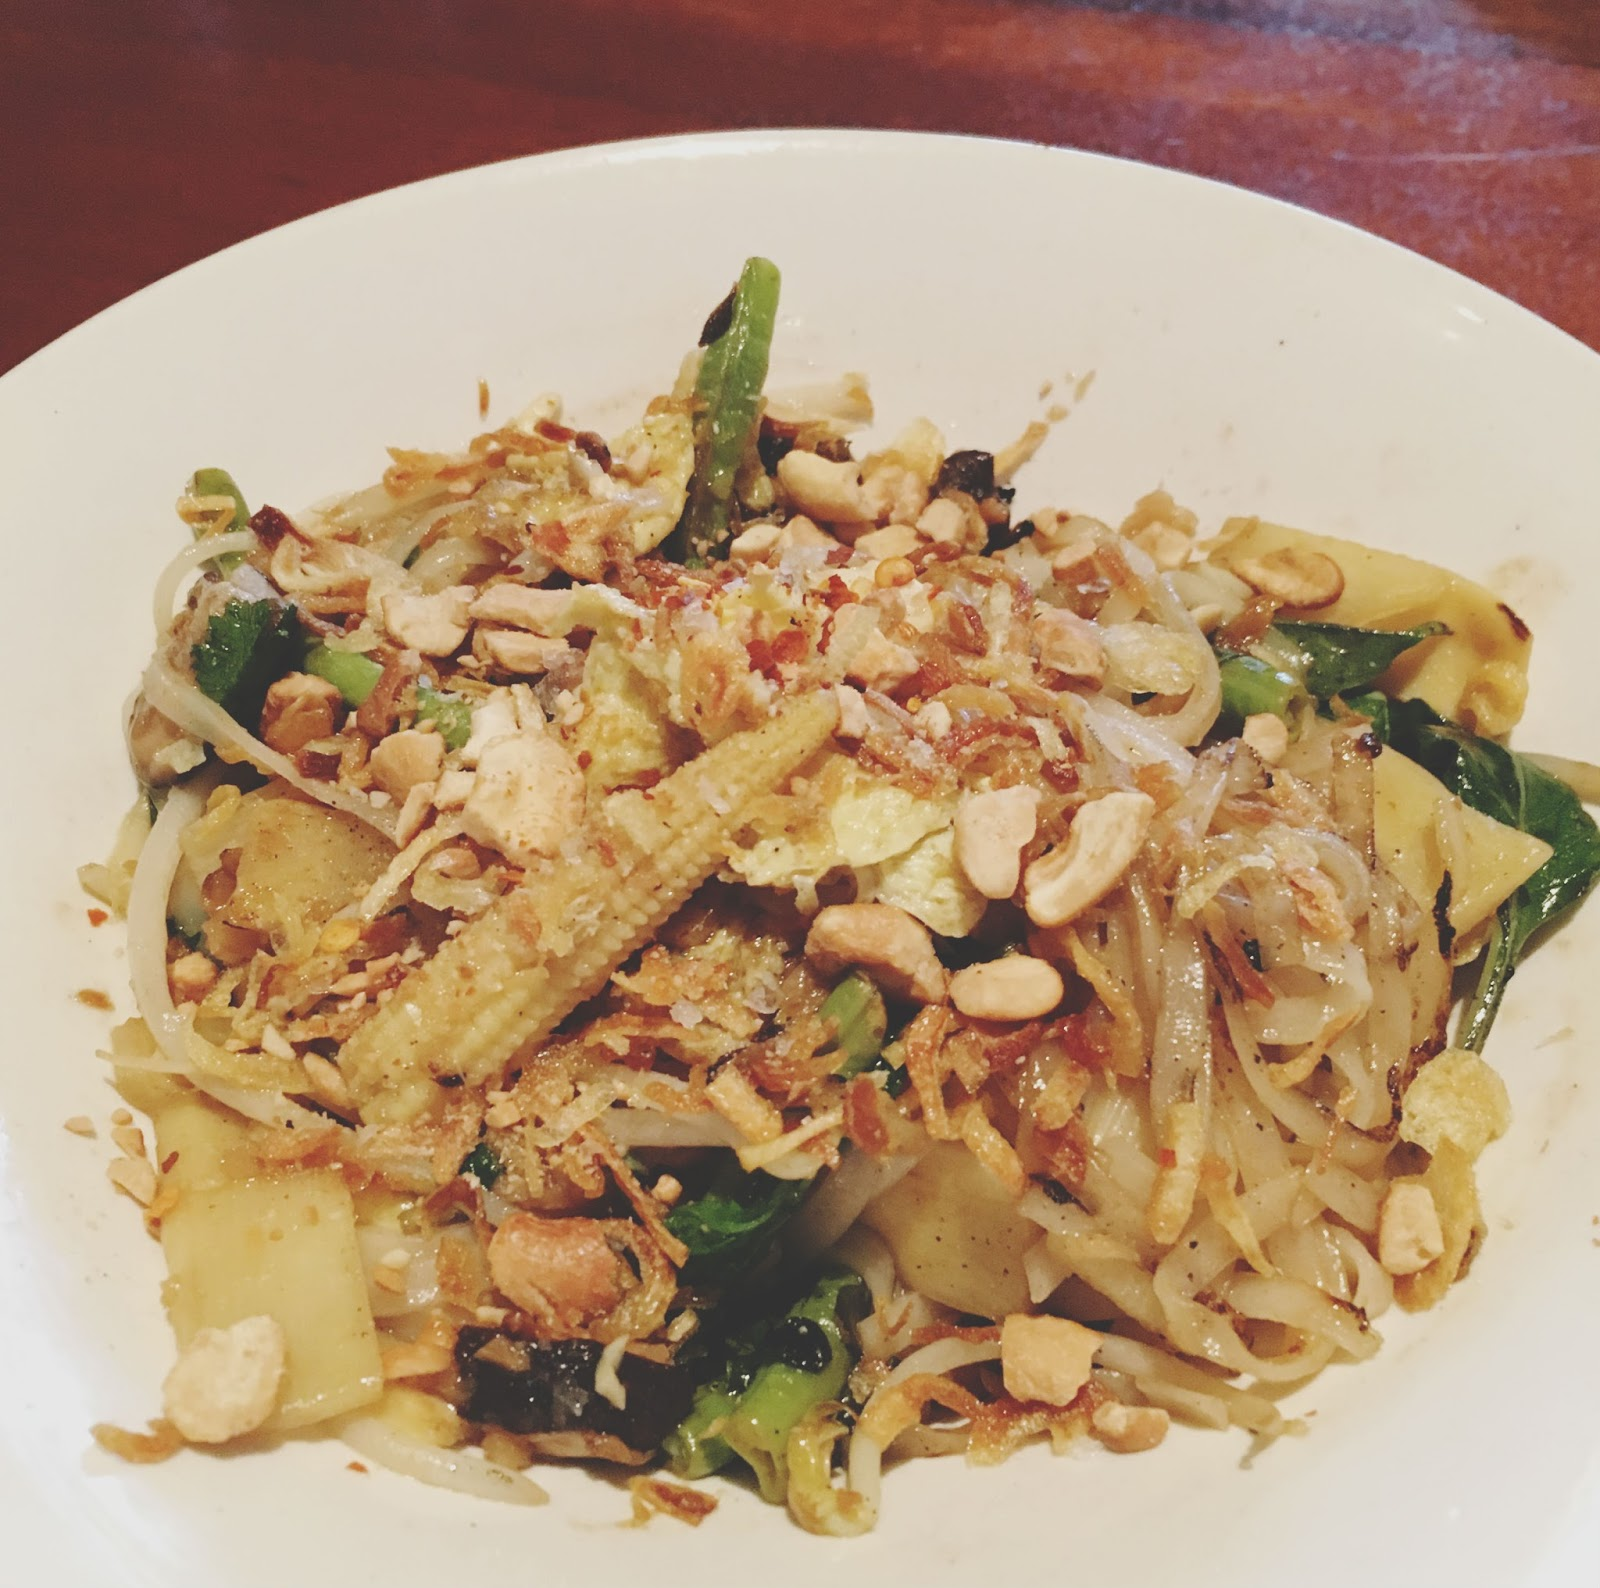 pad thai jay at Sway - a Thai restaurant in Austin, Texas